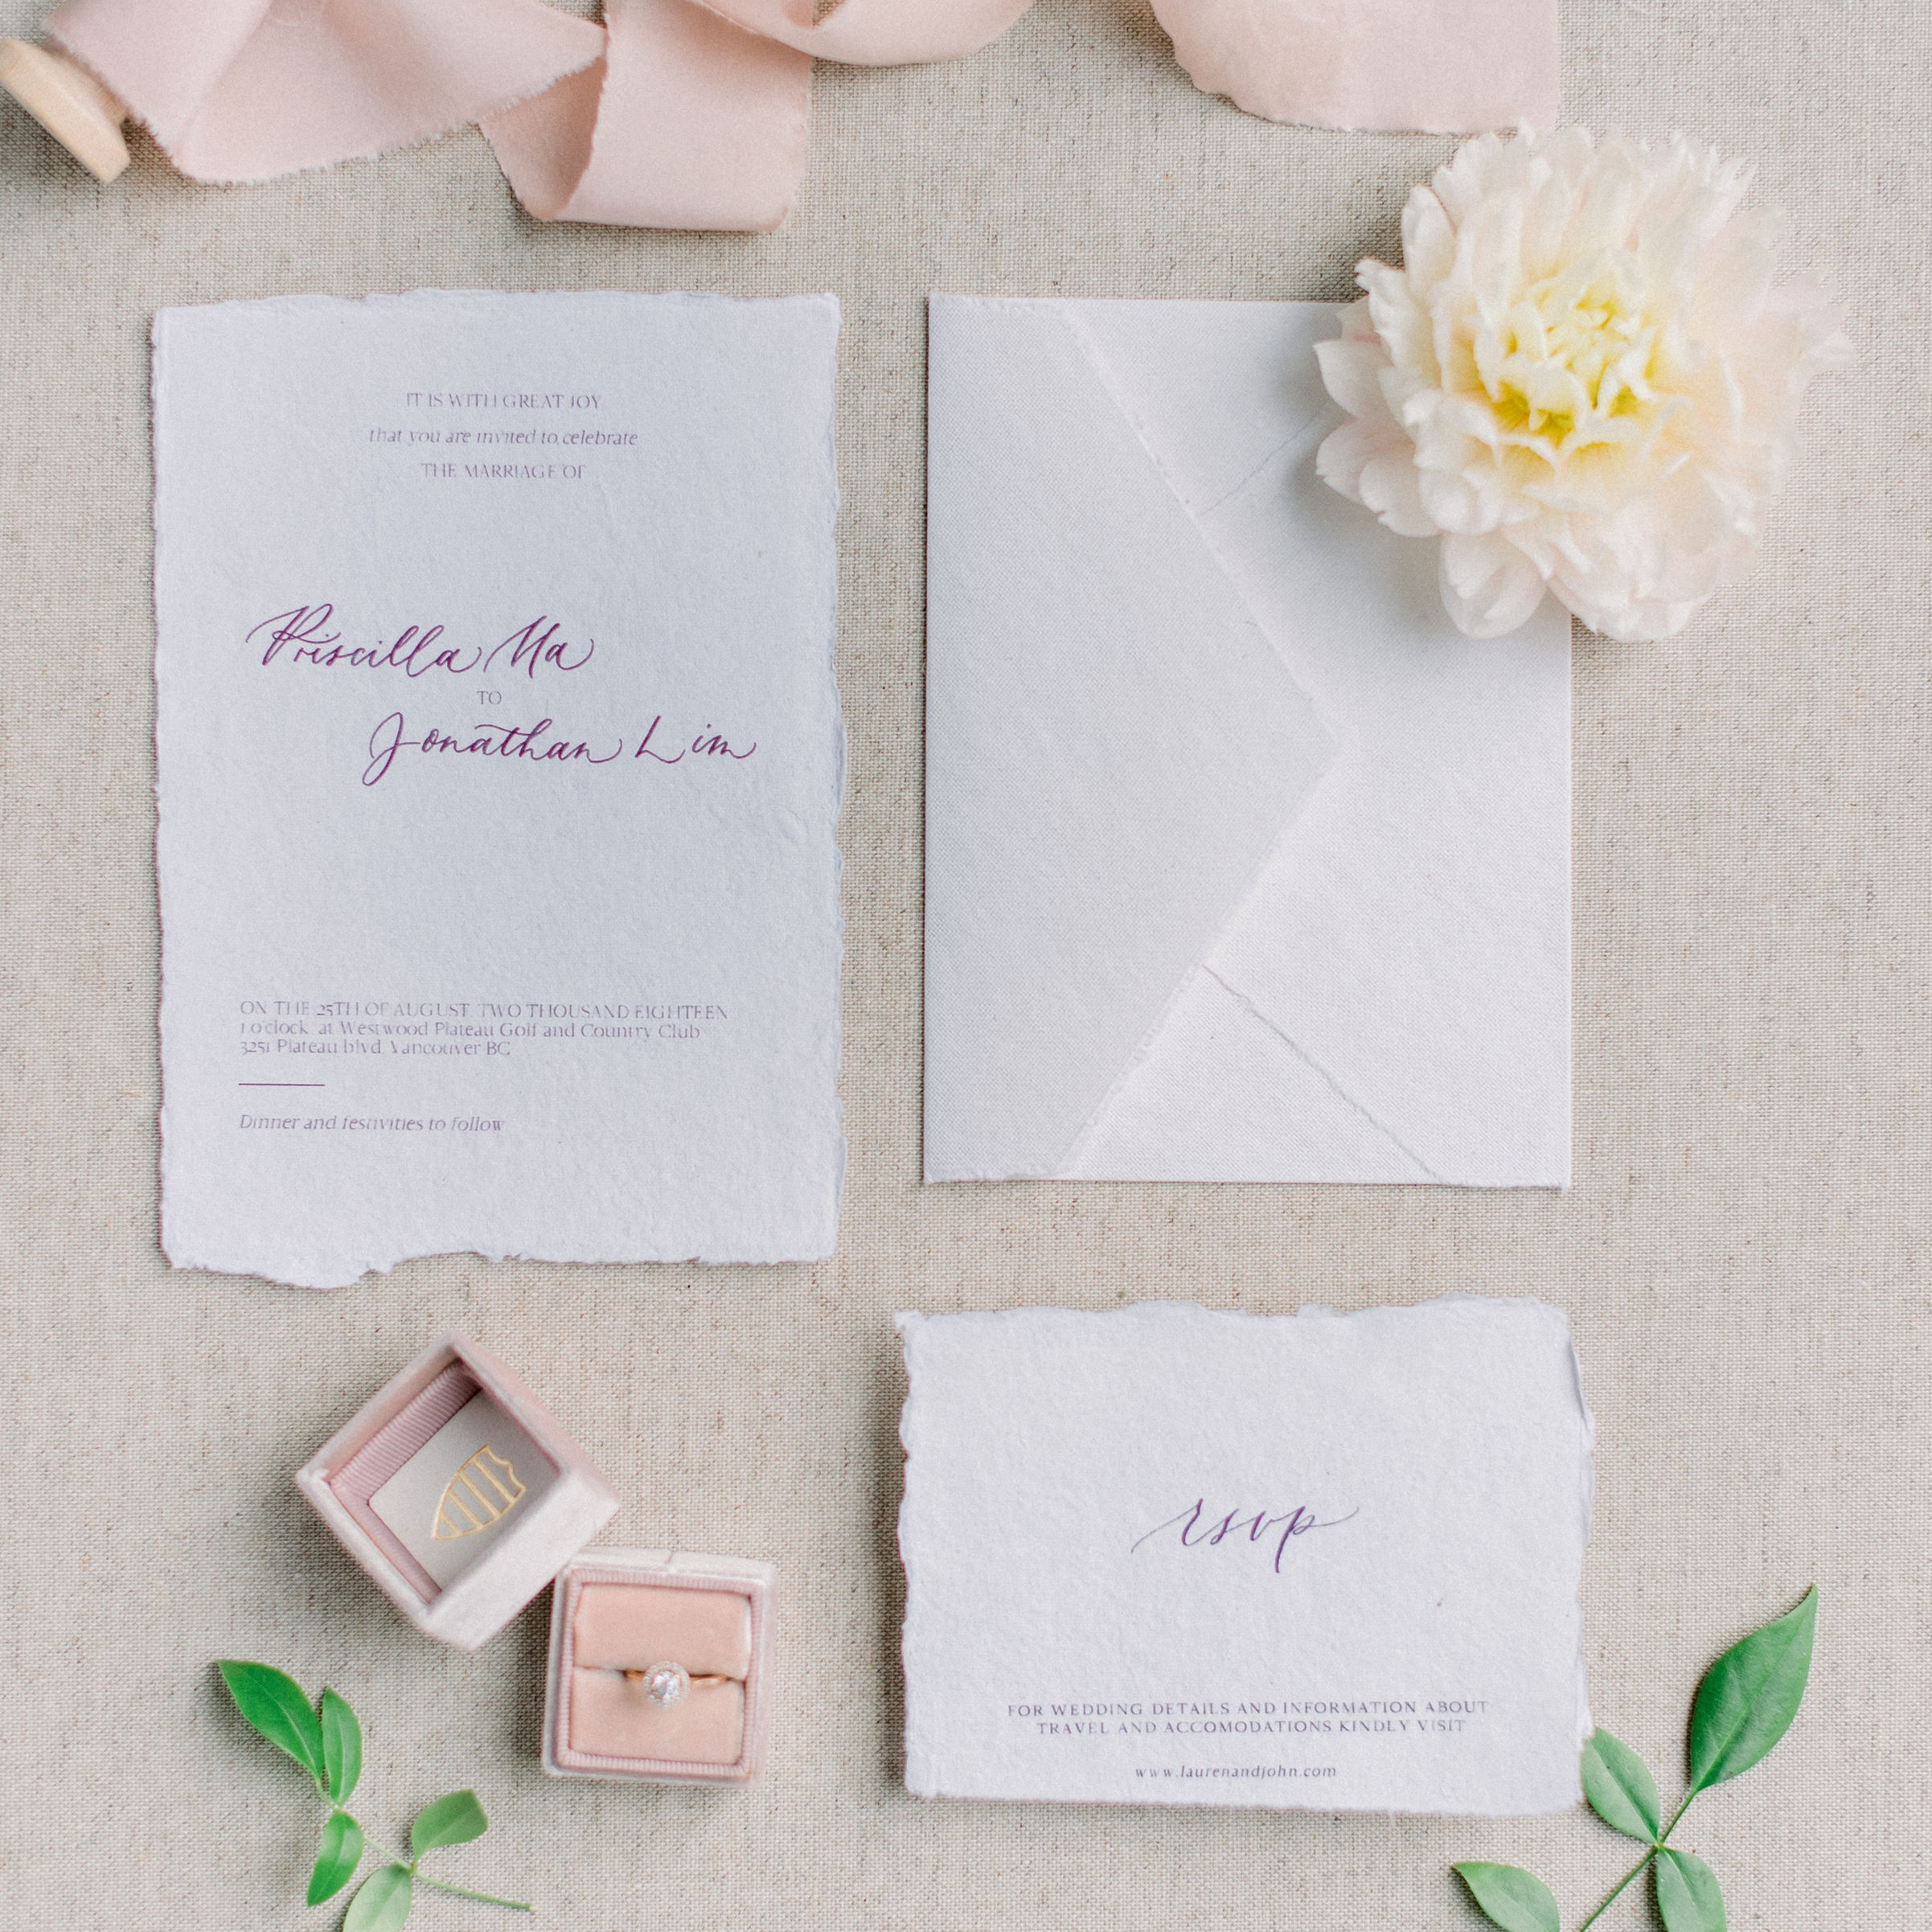 Services - Specializing in handwritten event stationery and signs